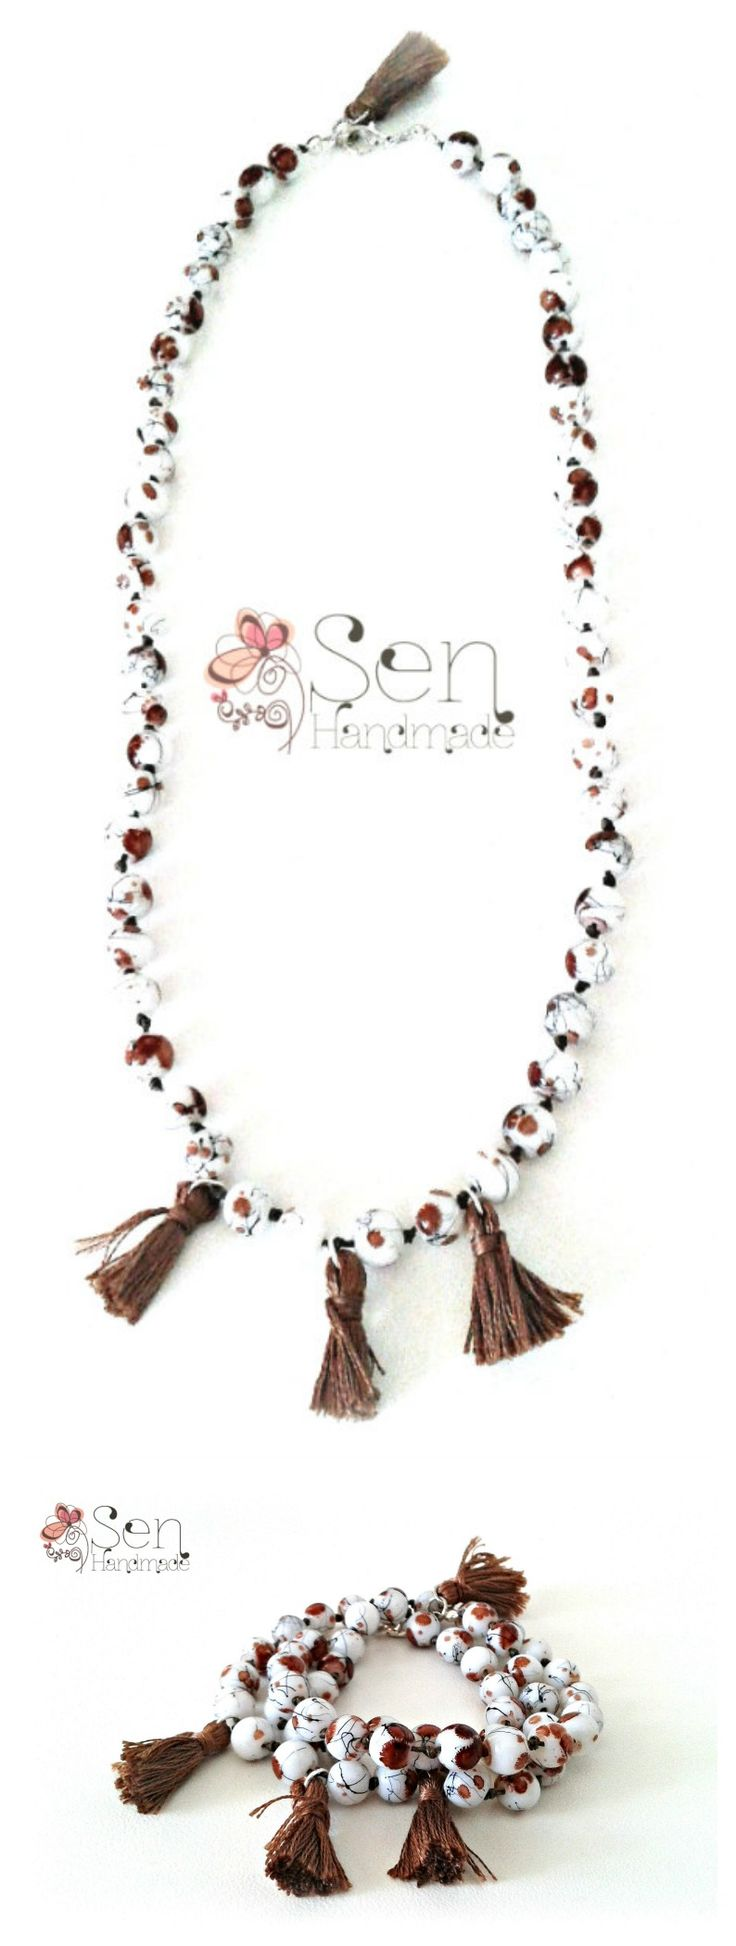 necklace or bracelet? your choice